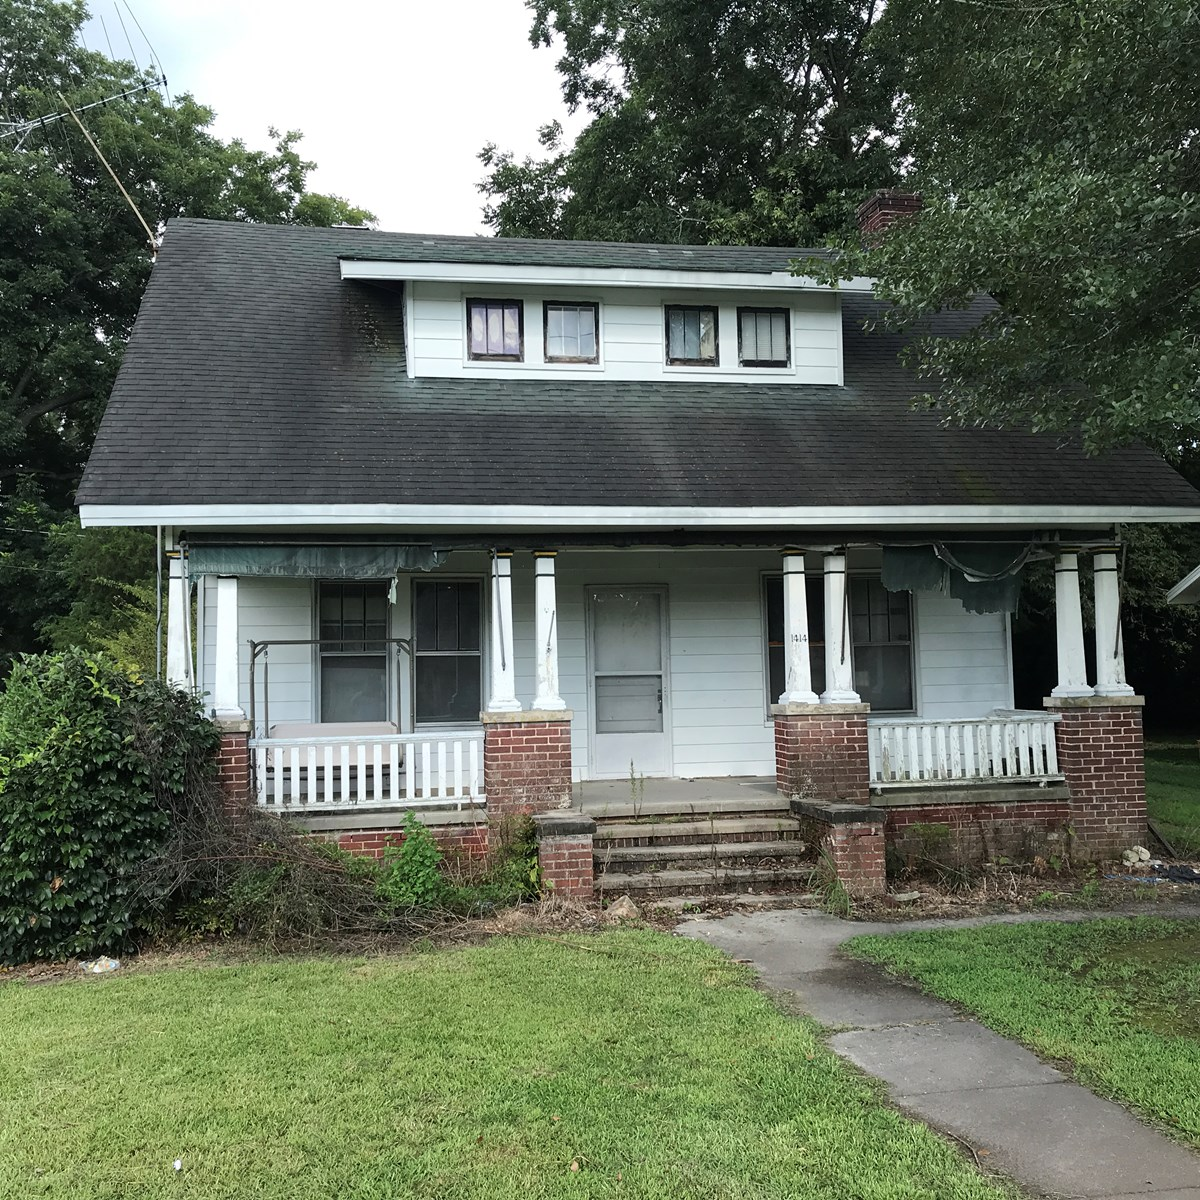 ELIZABETH CITY FIXER UPPER HOME AUCTION ON 9/22/18 AT NOON